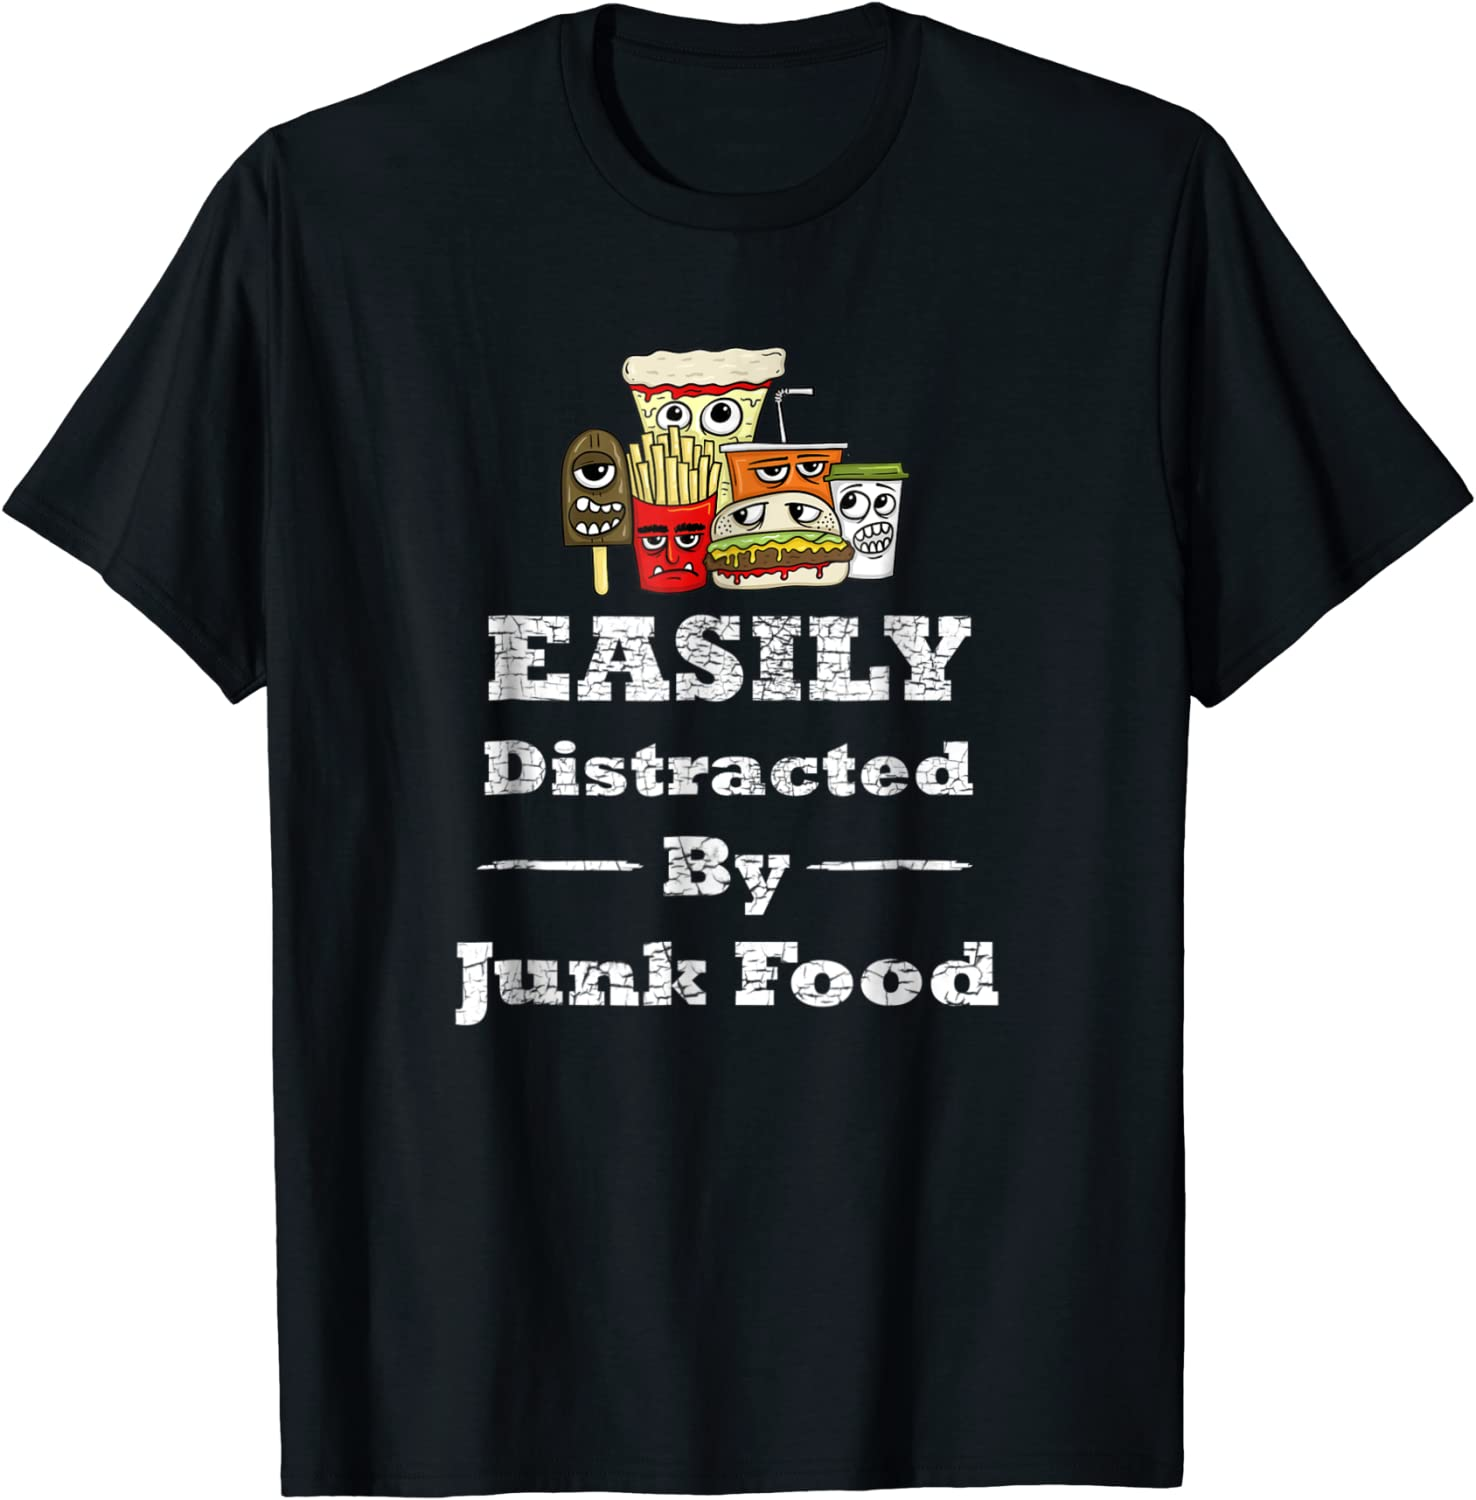 Easily Distracted By Junkfood T Shirt Funny Junk Food Tee